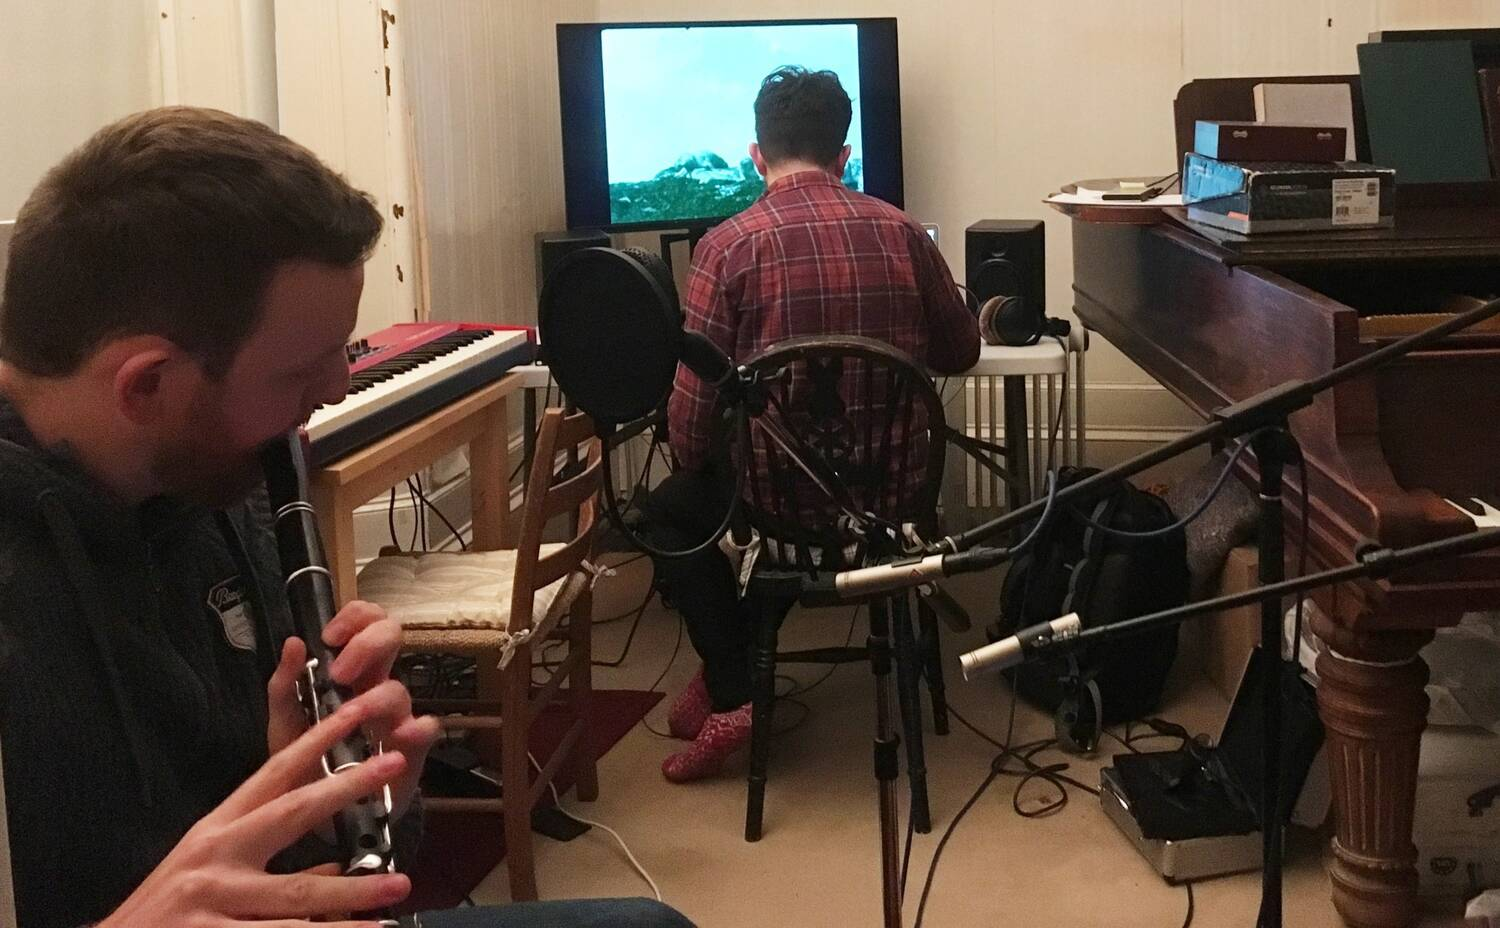 Two men sit in a recording studio in Canna House. One plays a flute while the other sits at a computer, editing video content.